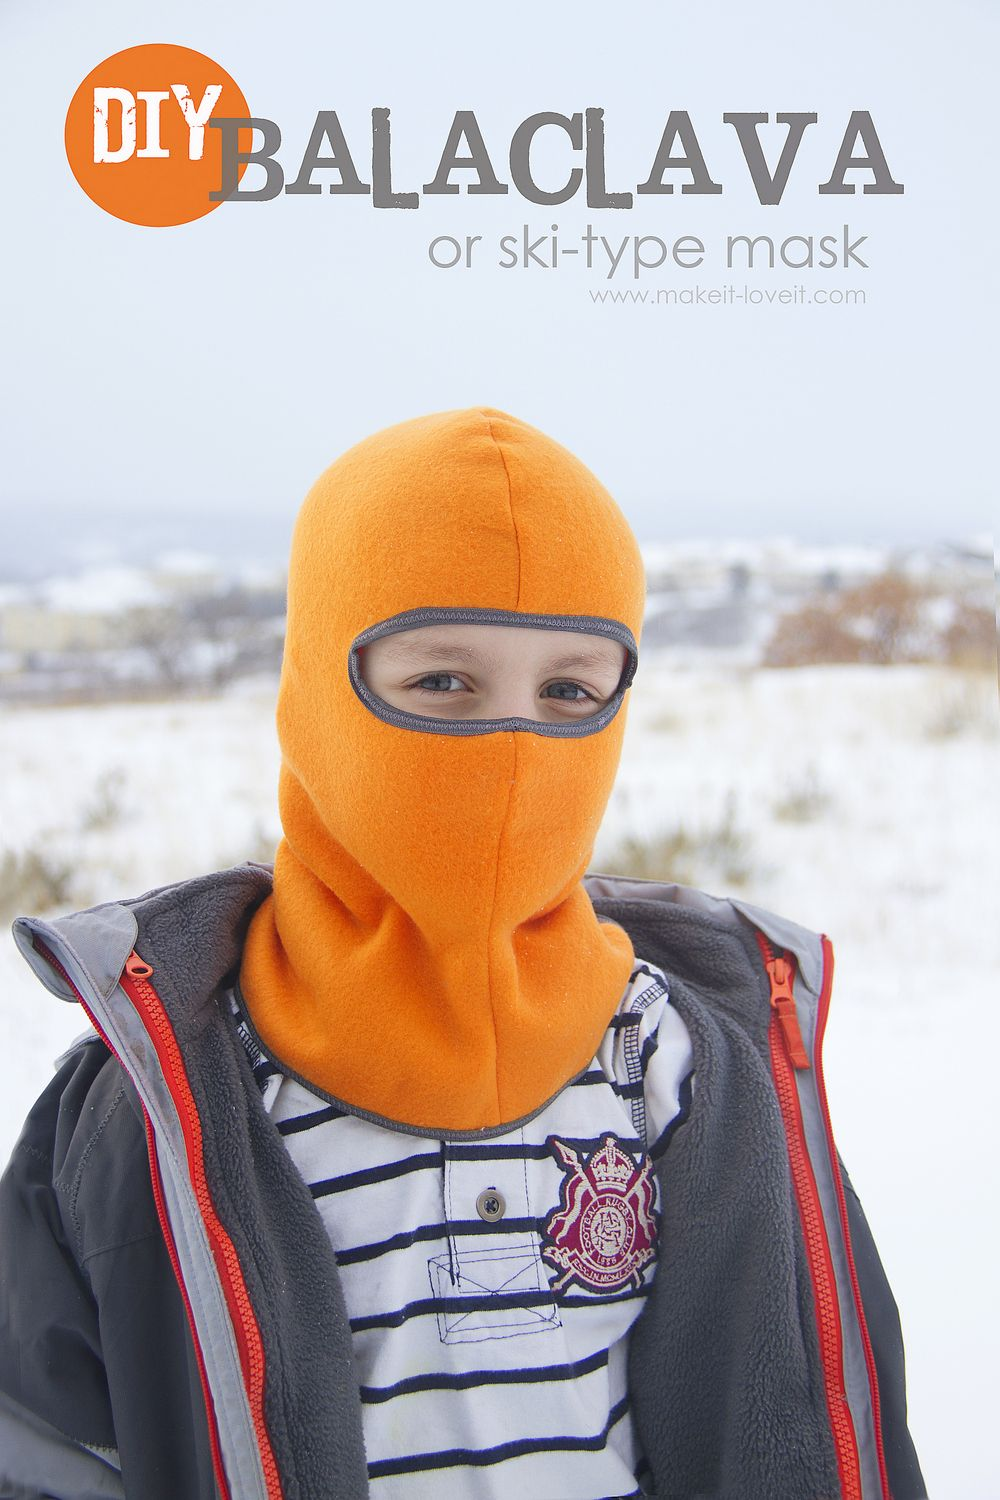 How to Make Your Own DIY Ski Mask (Balaclava Sewing Pattern) | Nähen ...